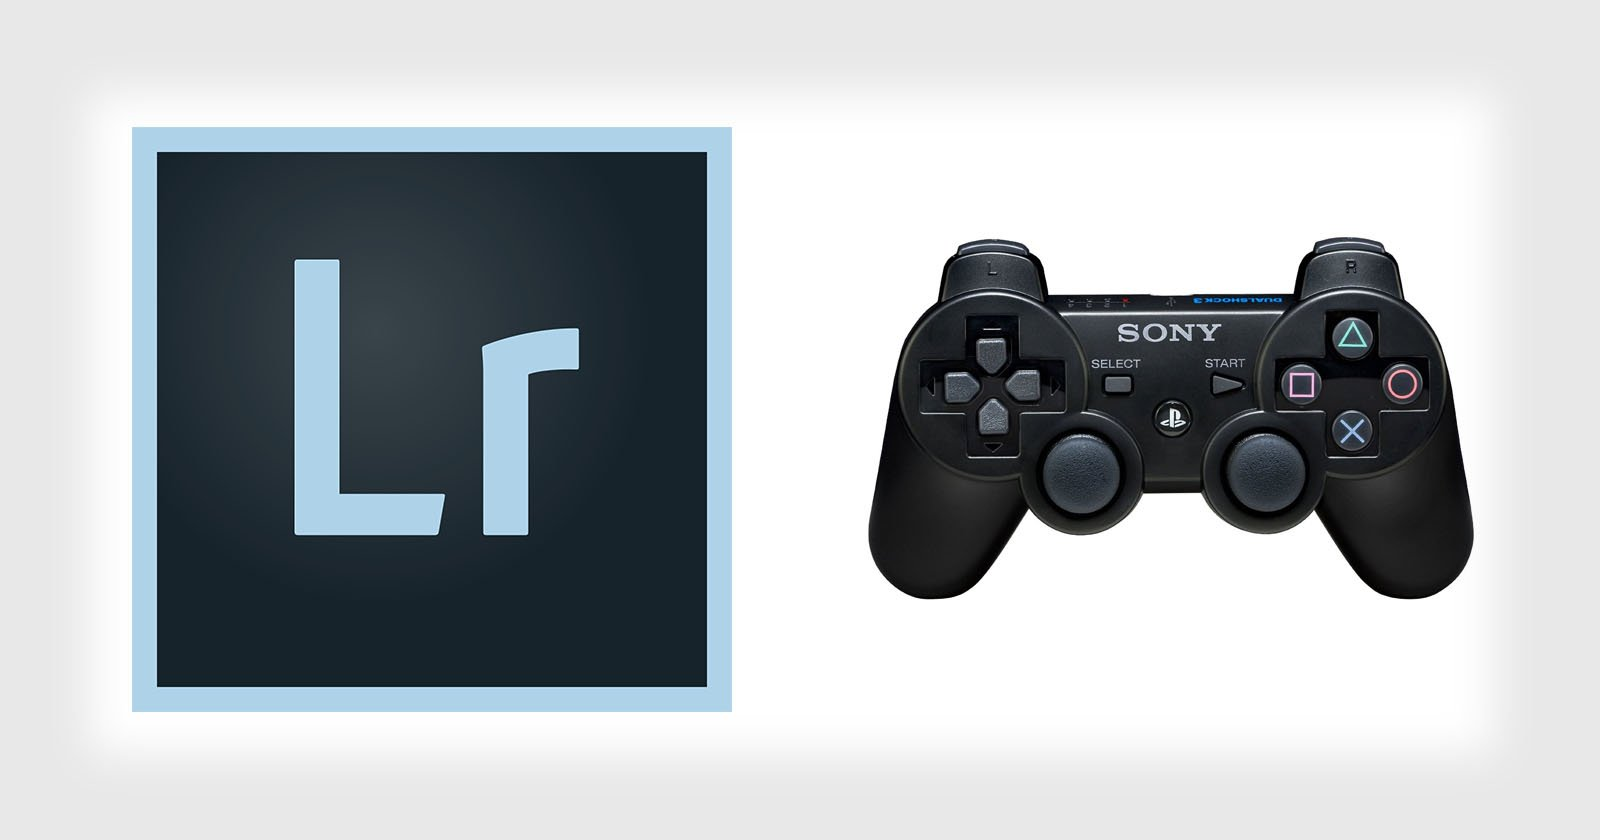 How to Edit Photos in Lightroom Using a Playstation Controller